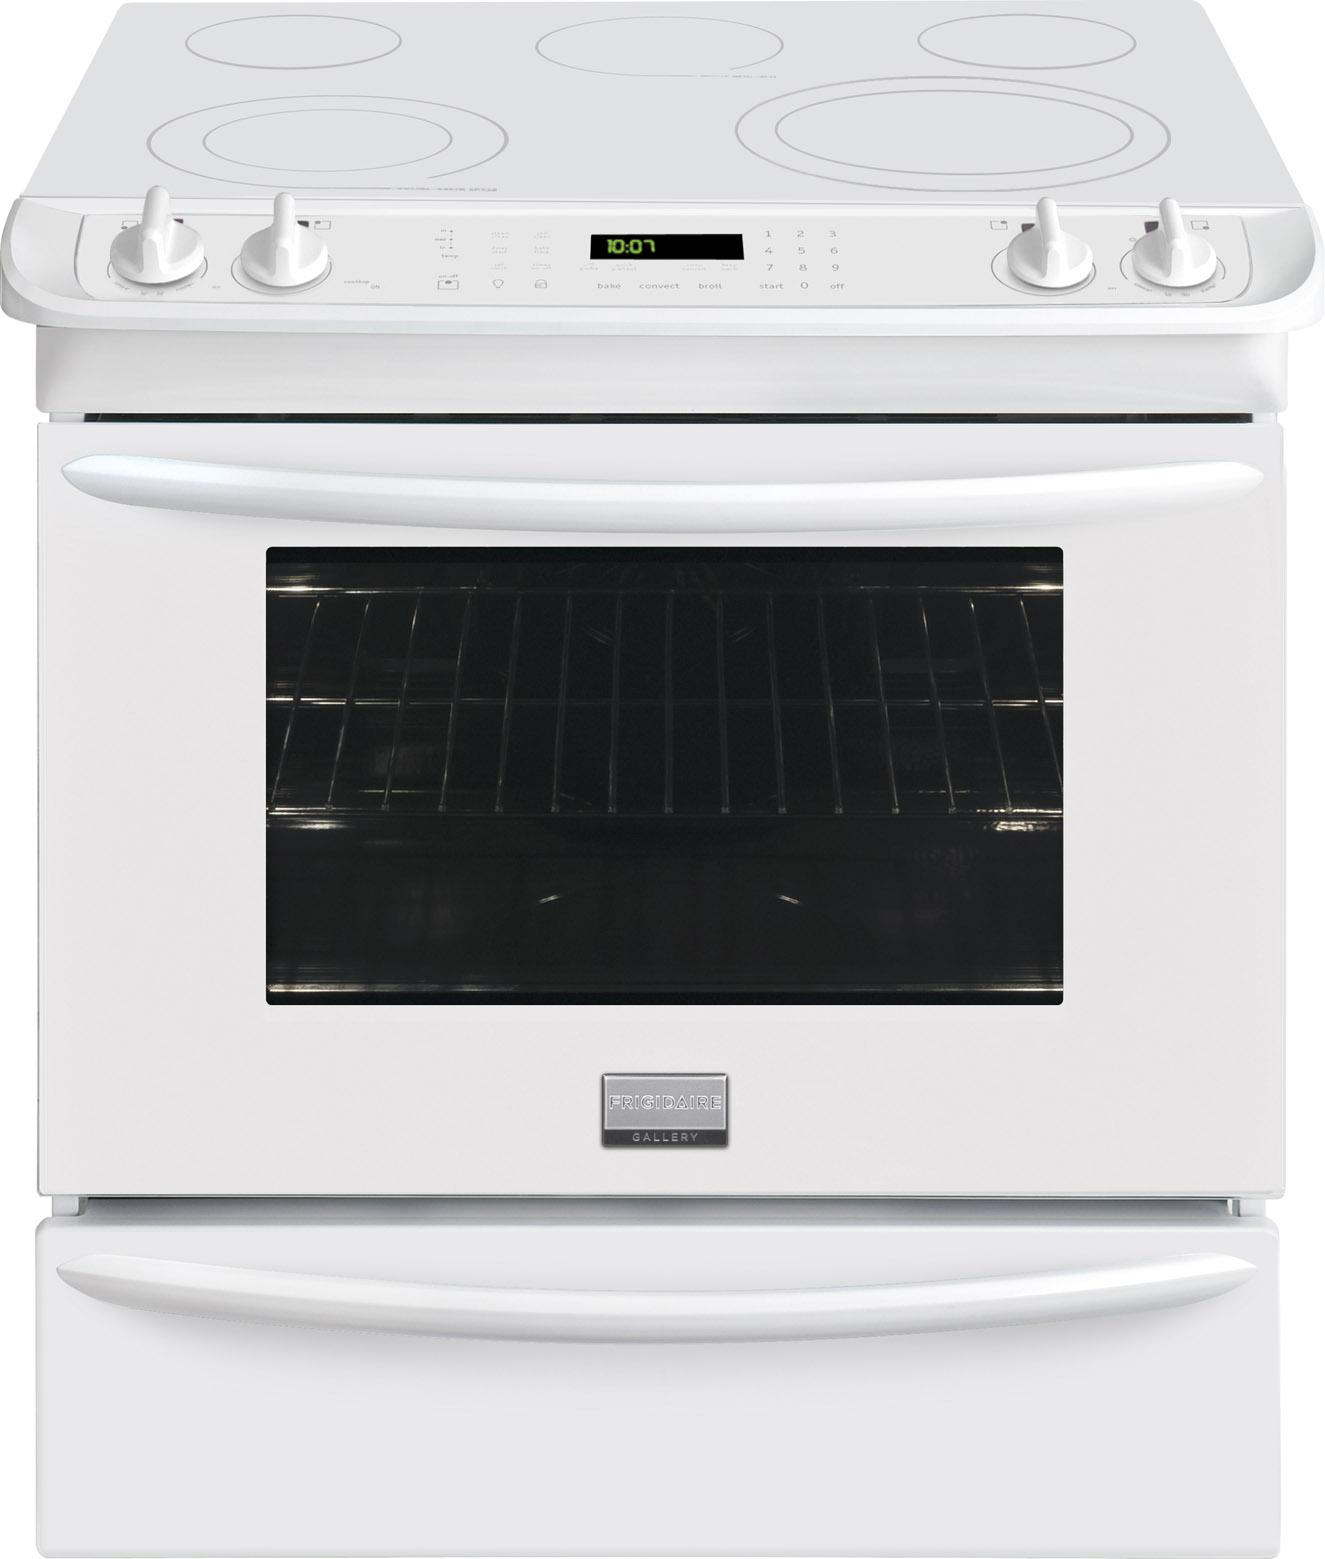 "Frigidaire Frigidaire Gallery Electric Ranges 30"" Slide-In Electric Range - Item Number: FGES3065PW"